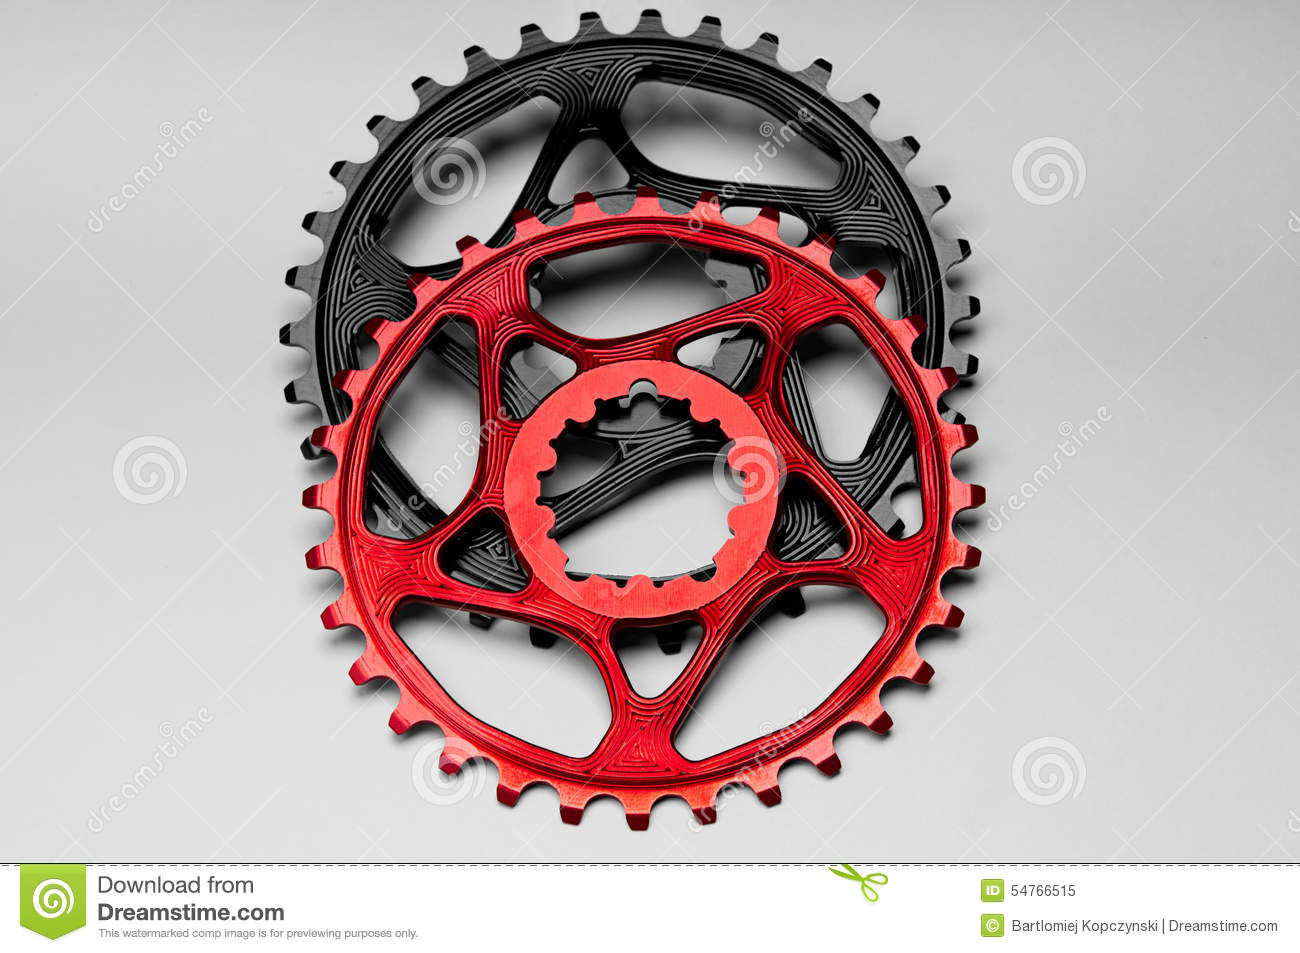 Red and black Bicycle chainring